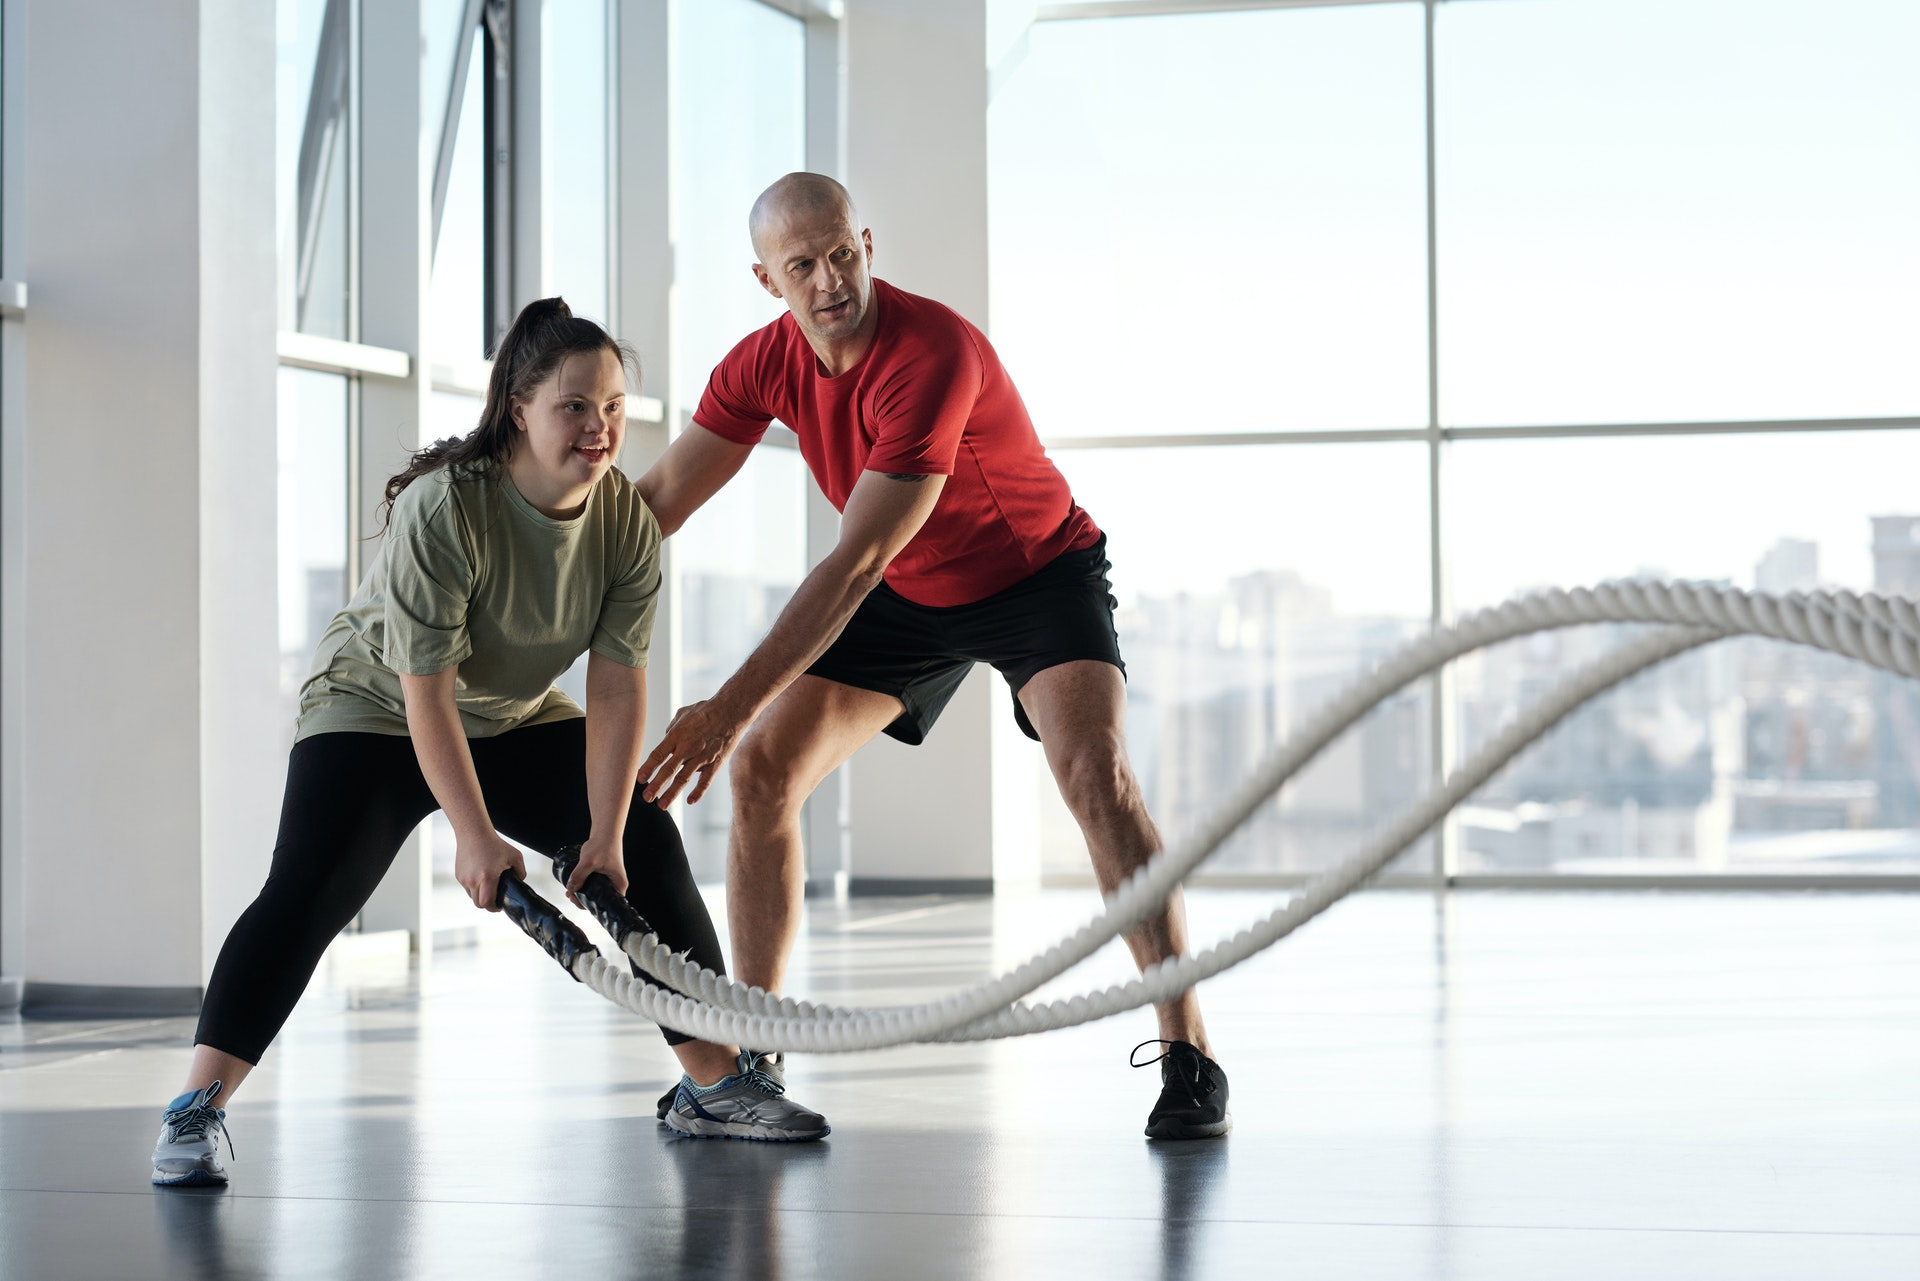 Achieve Your Fitness Goals with Professional Medical Personal Training in New York